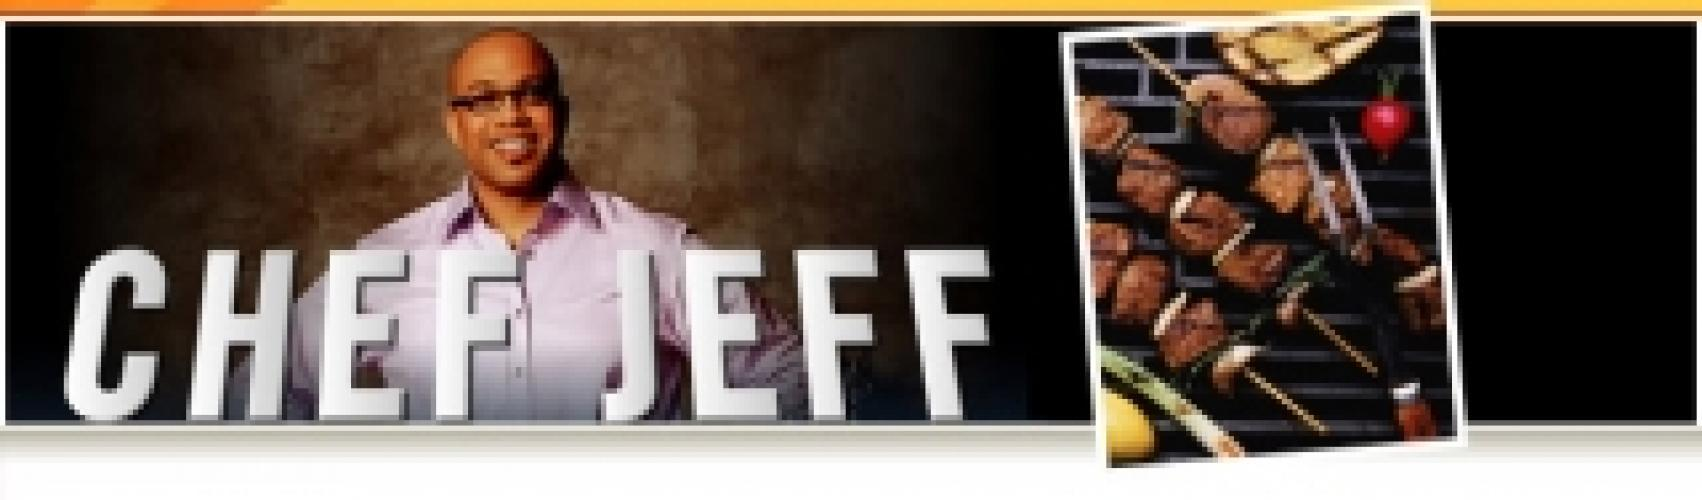 The Chef Jeff Project next episode air date poster